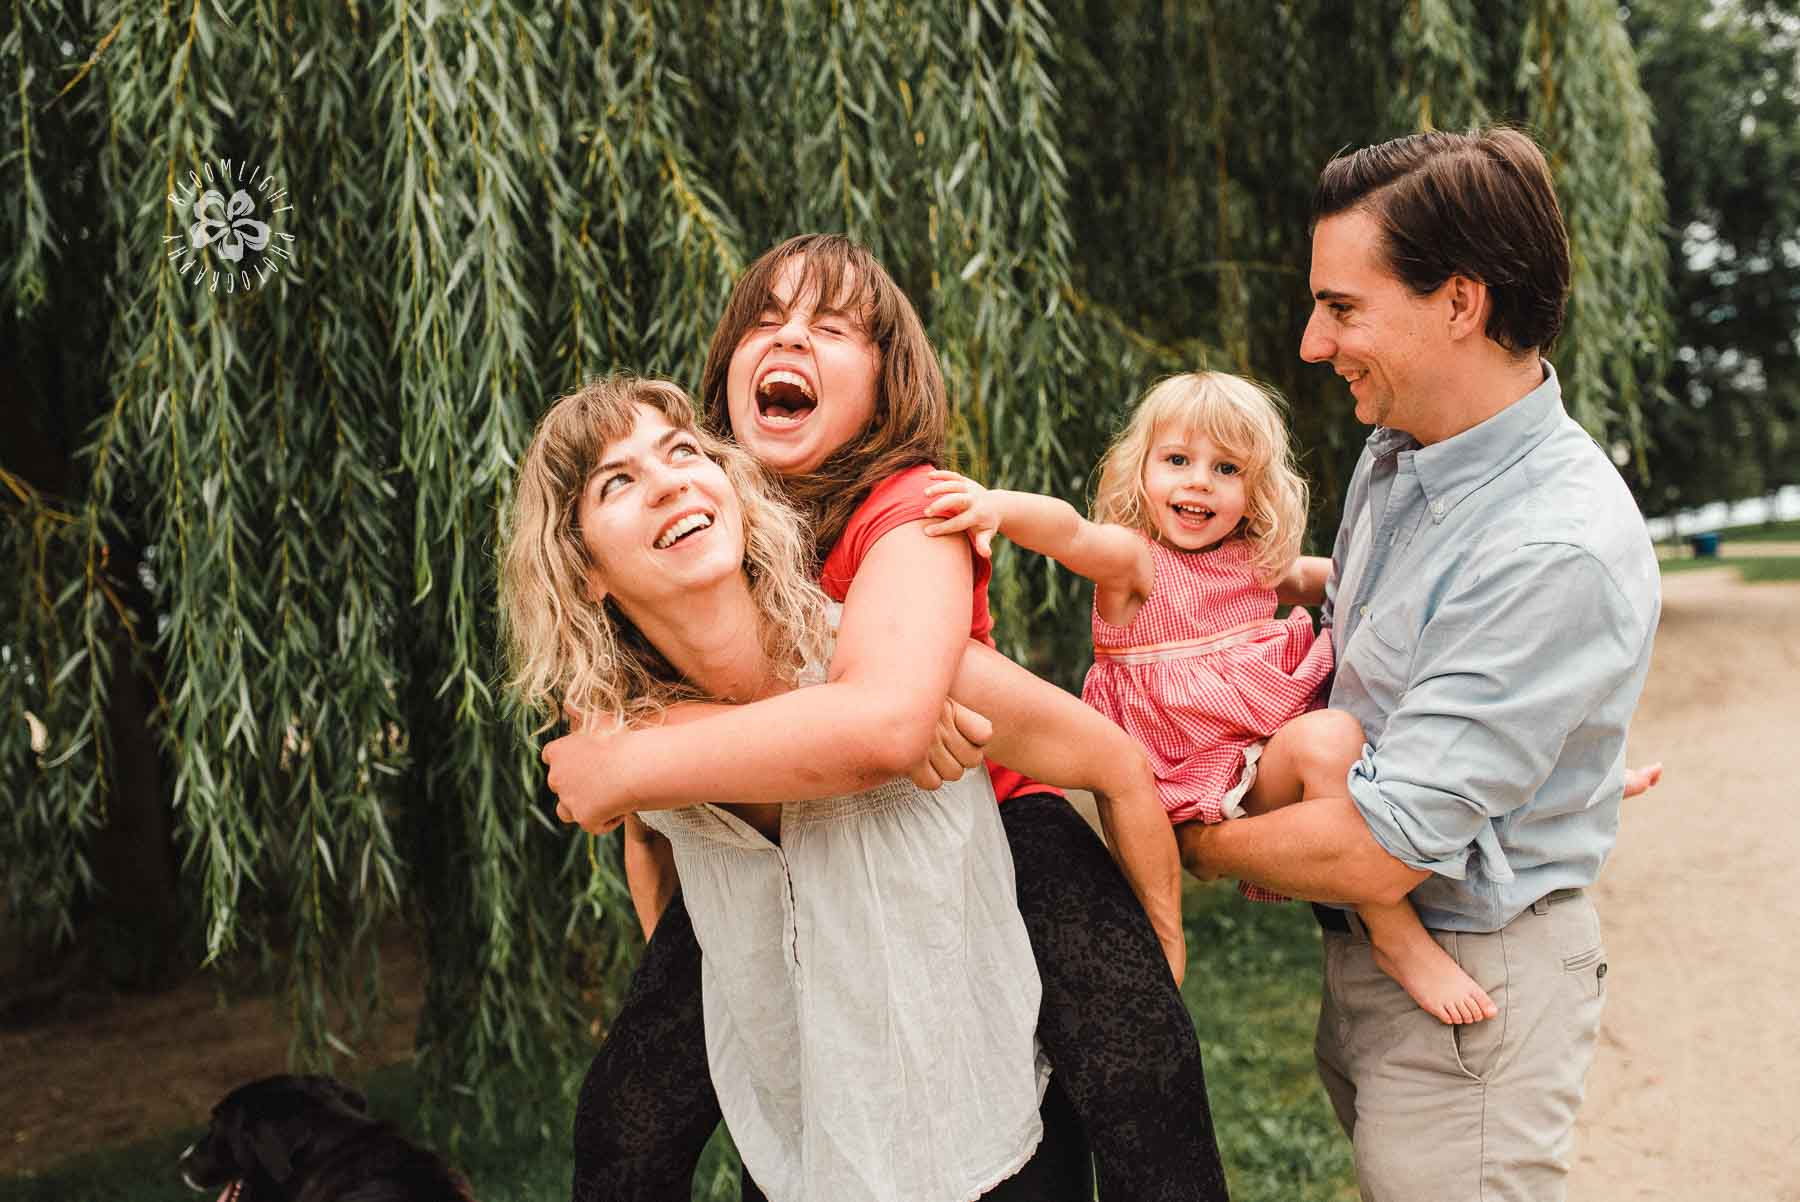 family-picture-filled-with-laughter-Toronto-Lifestyle-Photographer.JPG